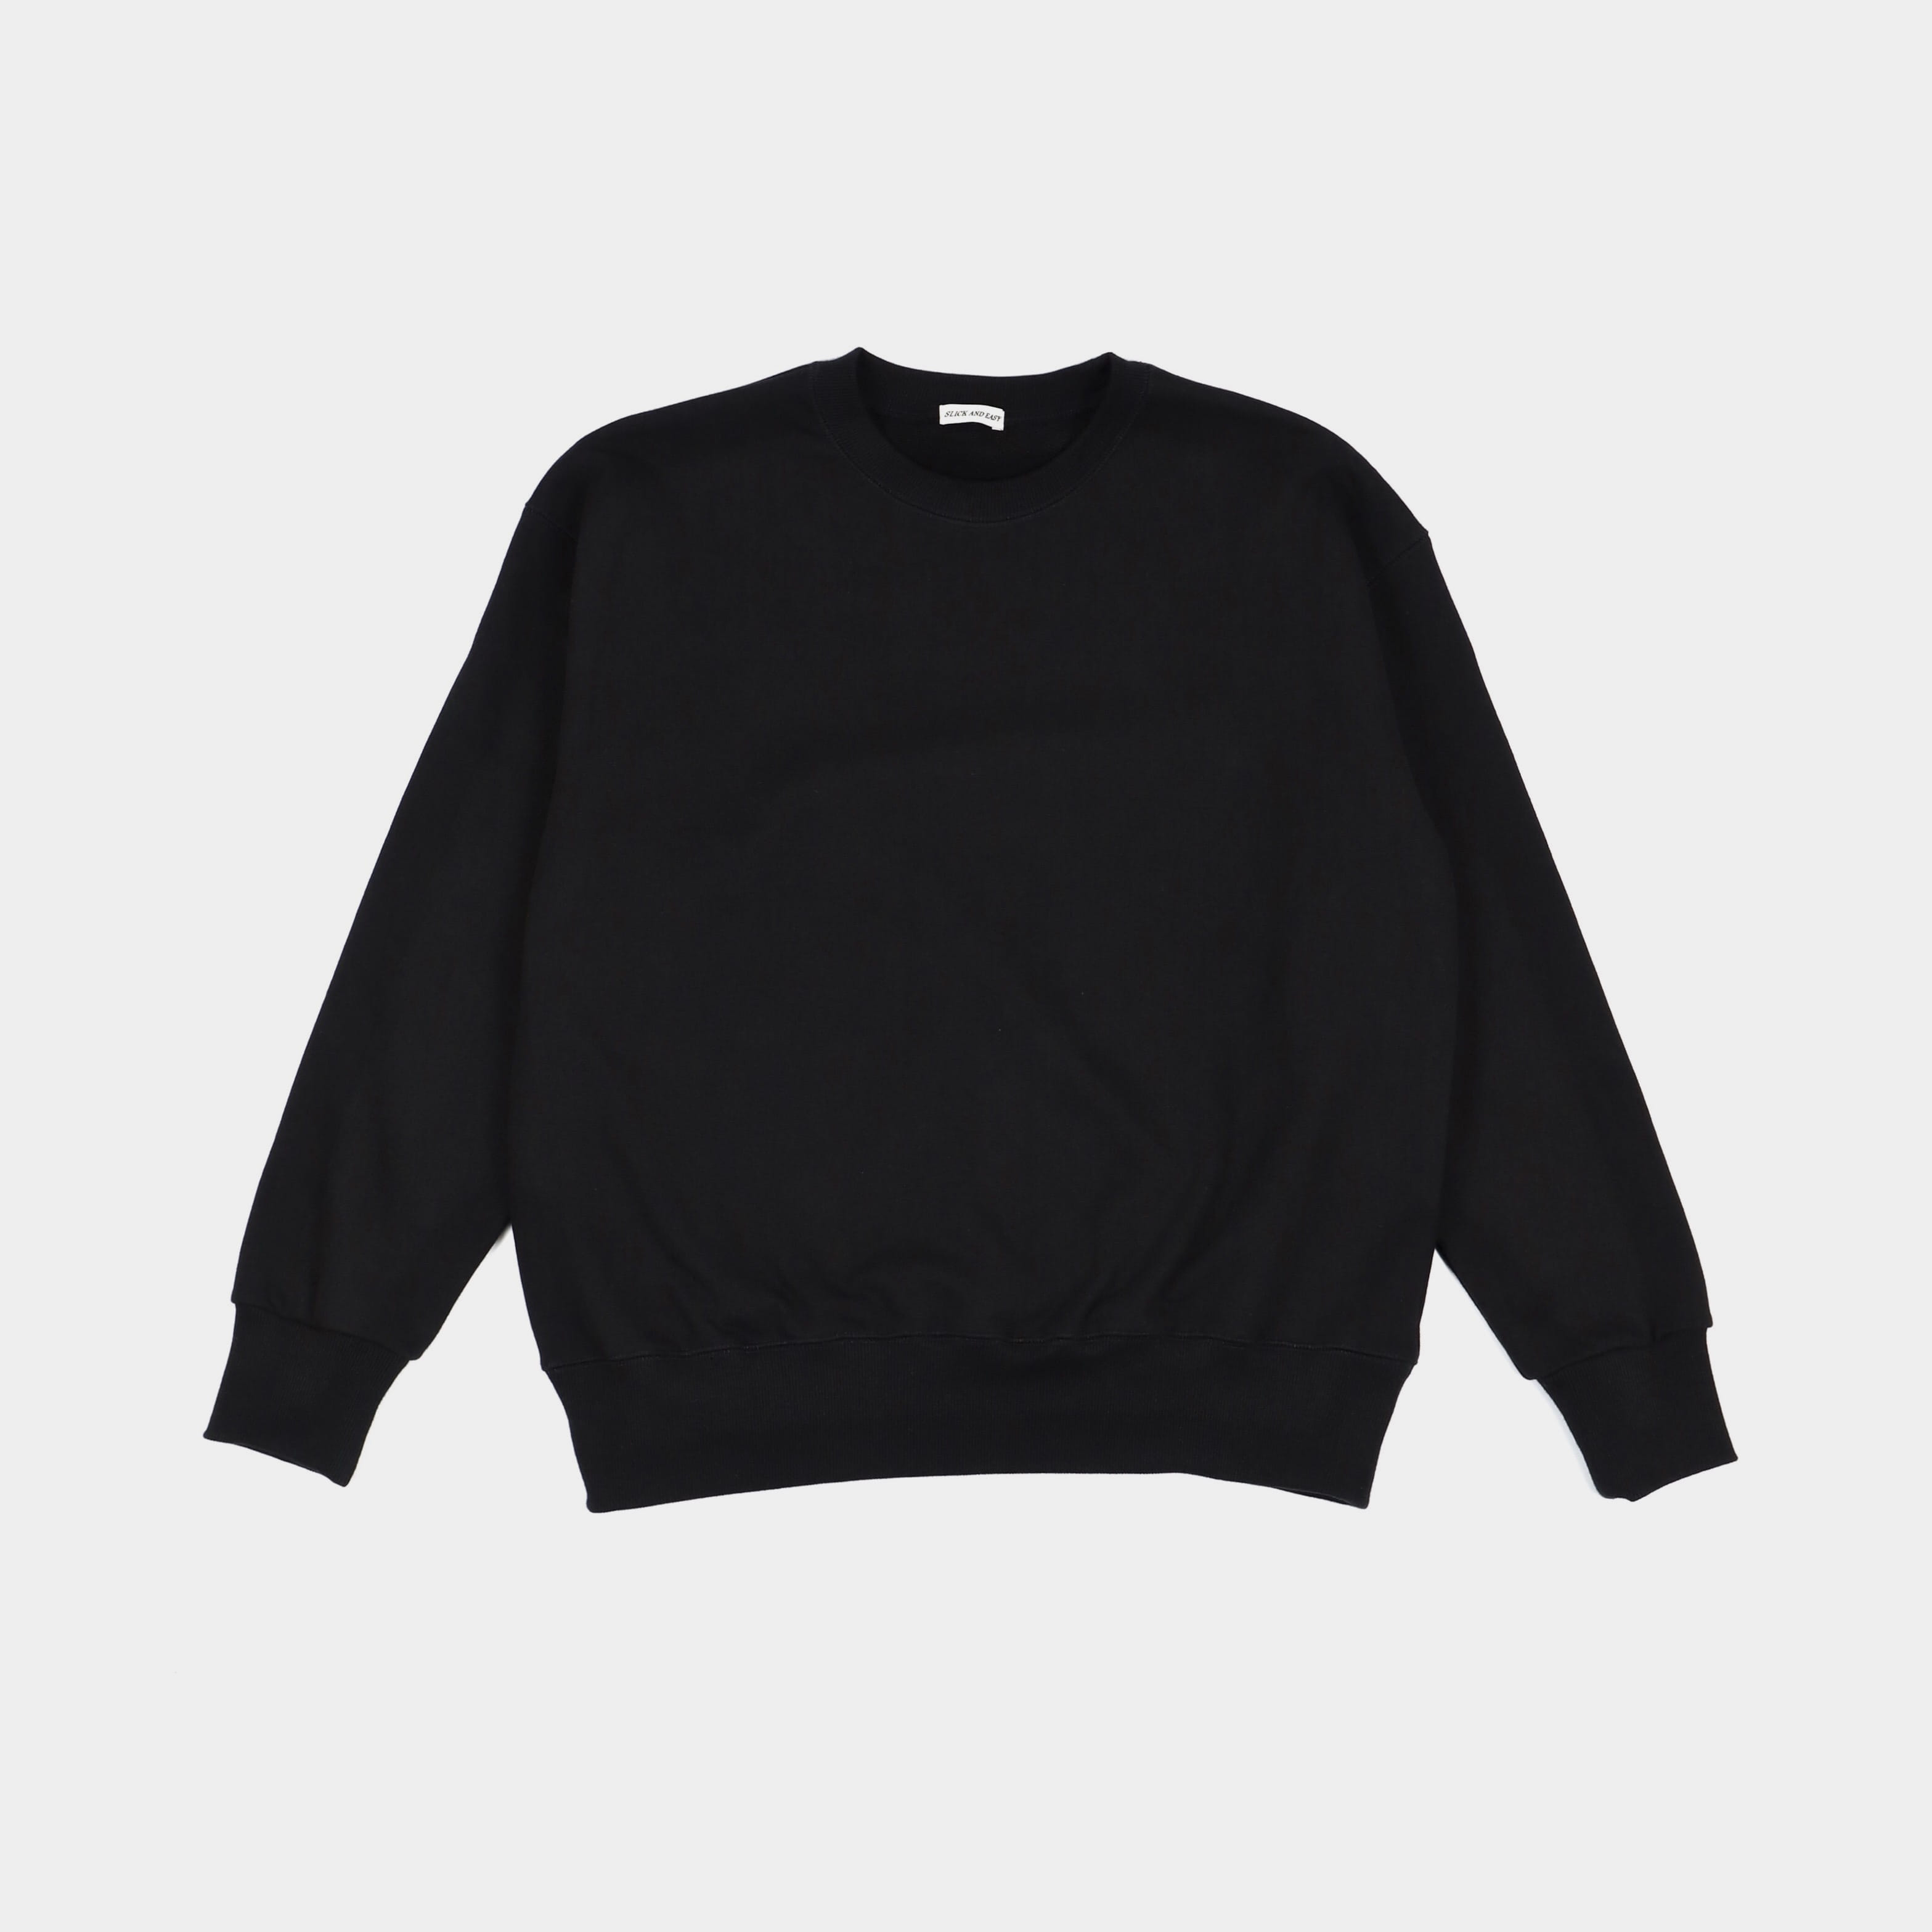 Tonki Sweatshirt Black